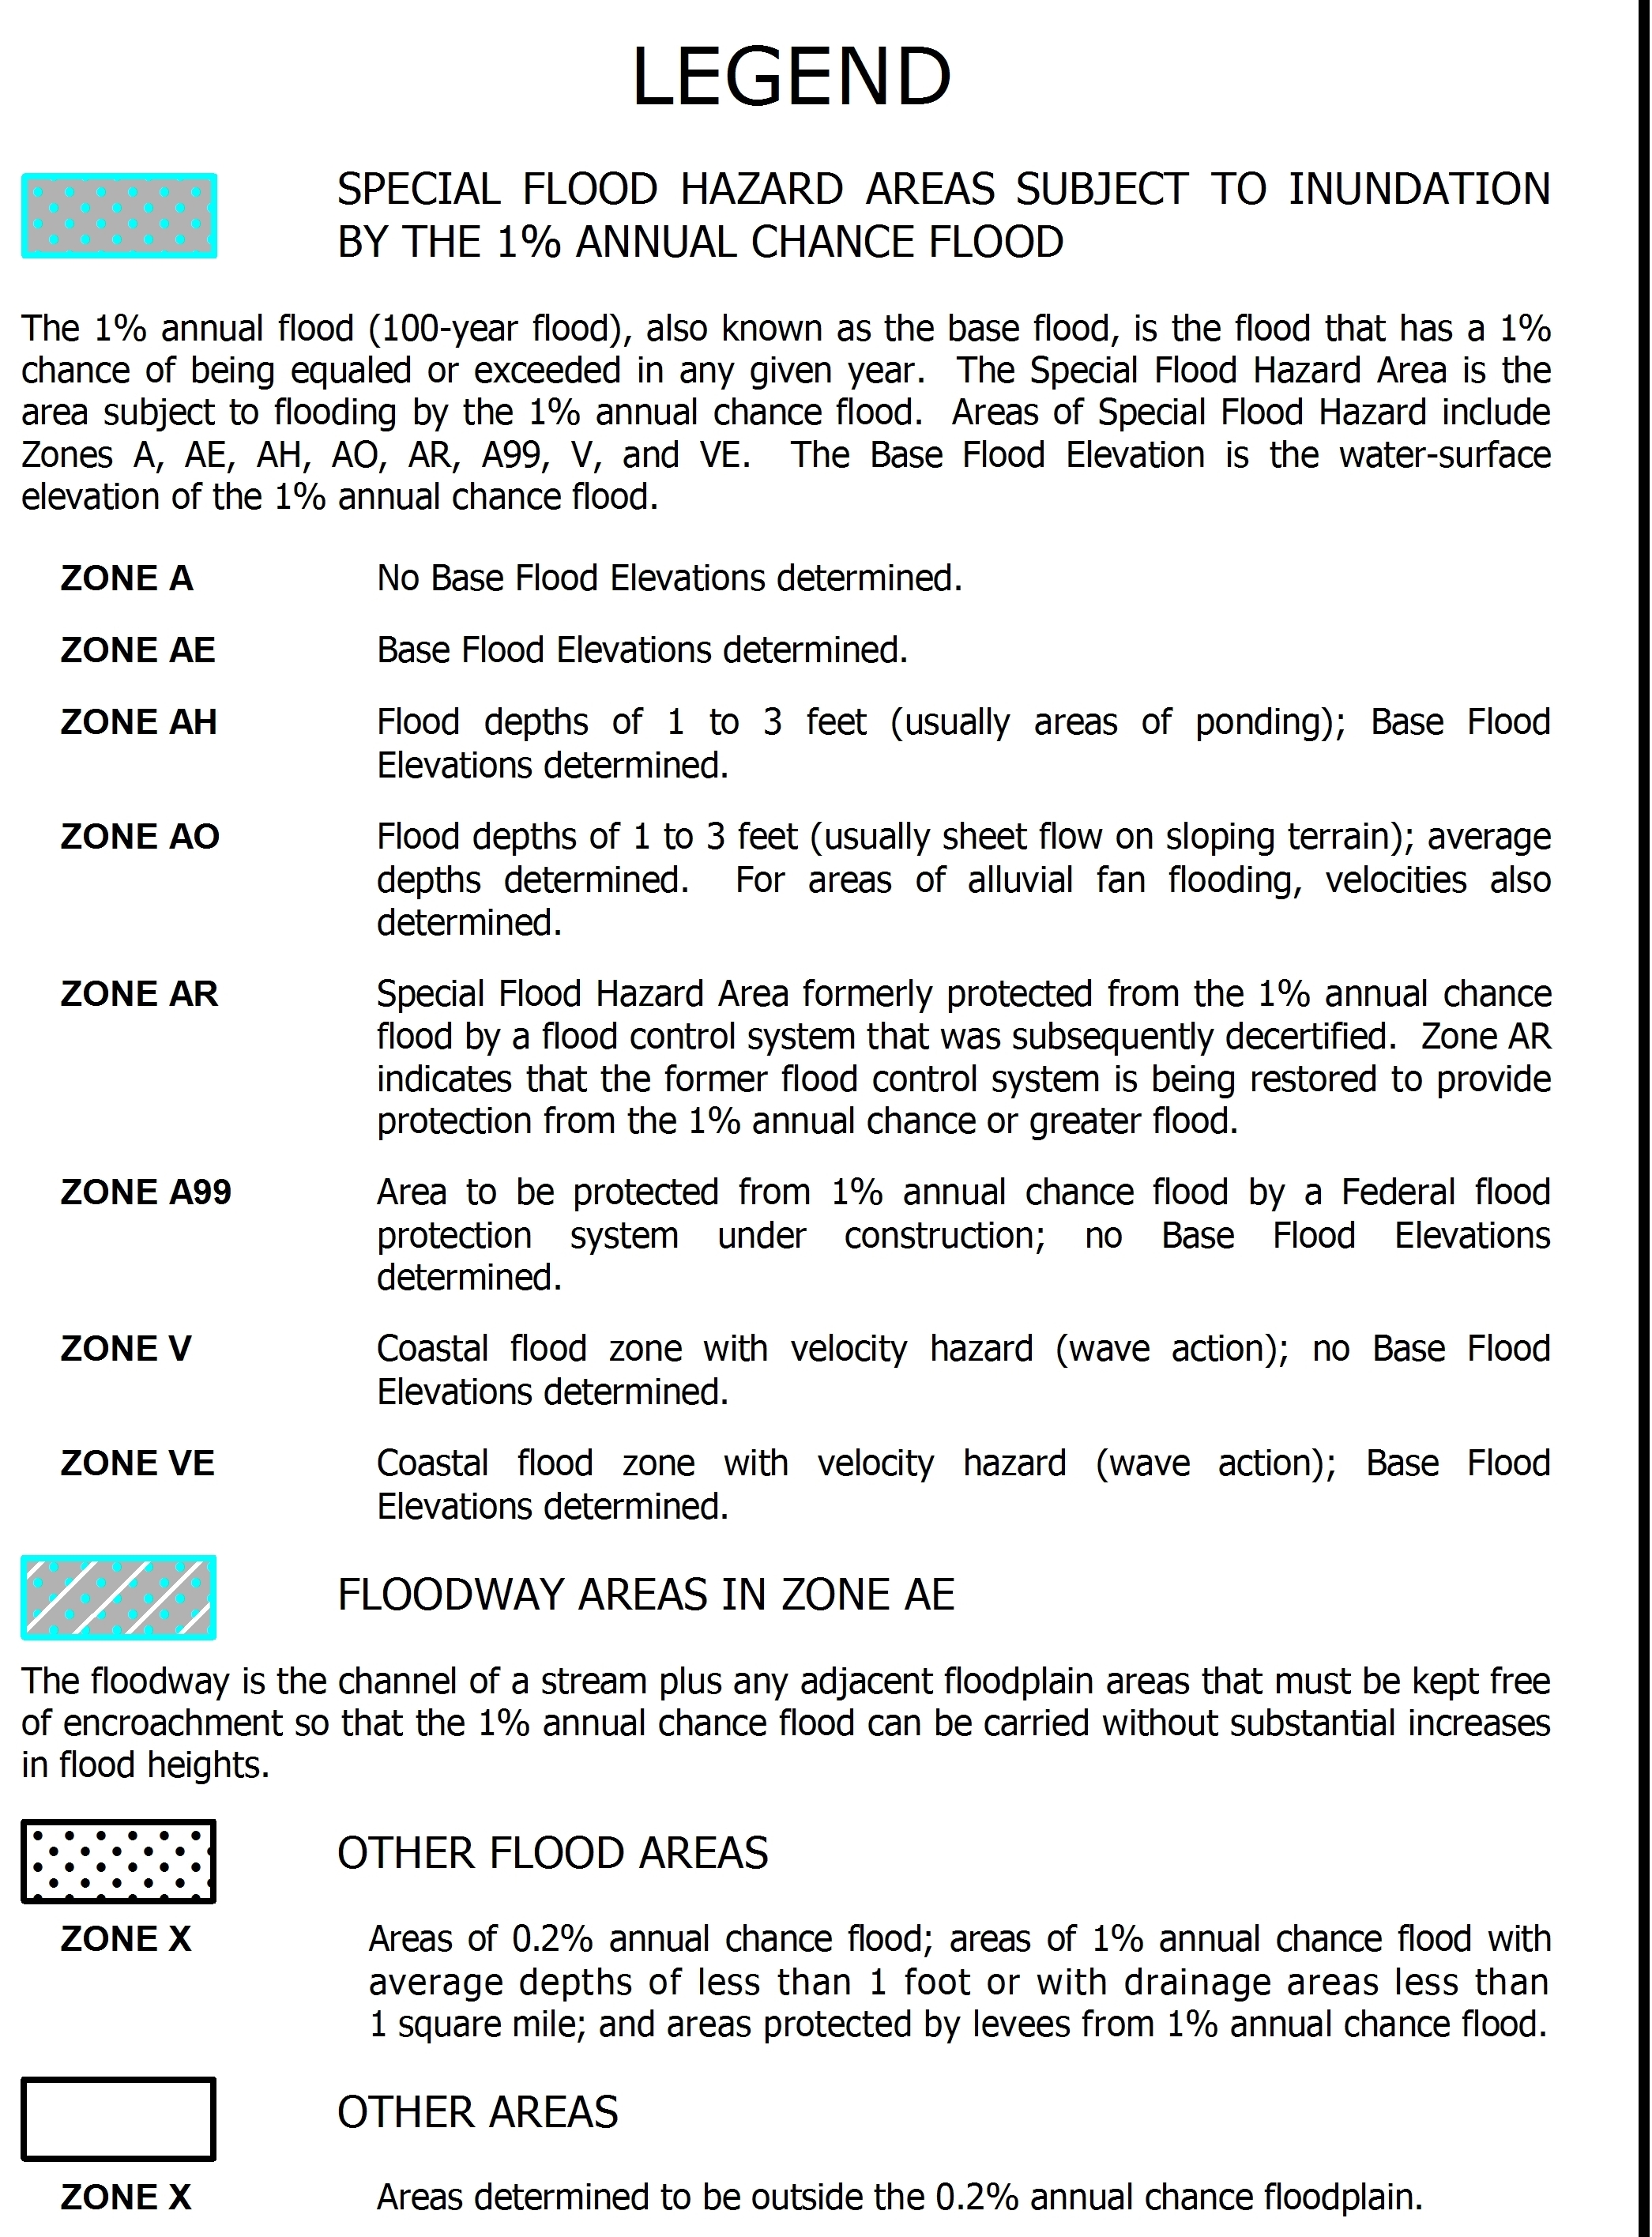 FEMA floodplain designations map legend